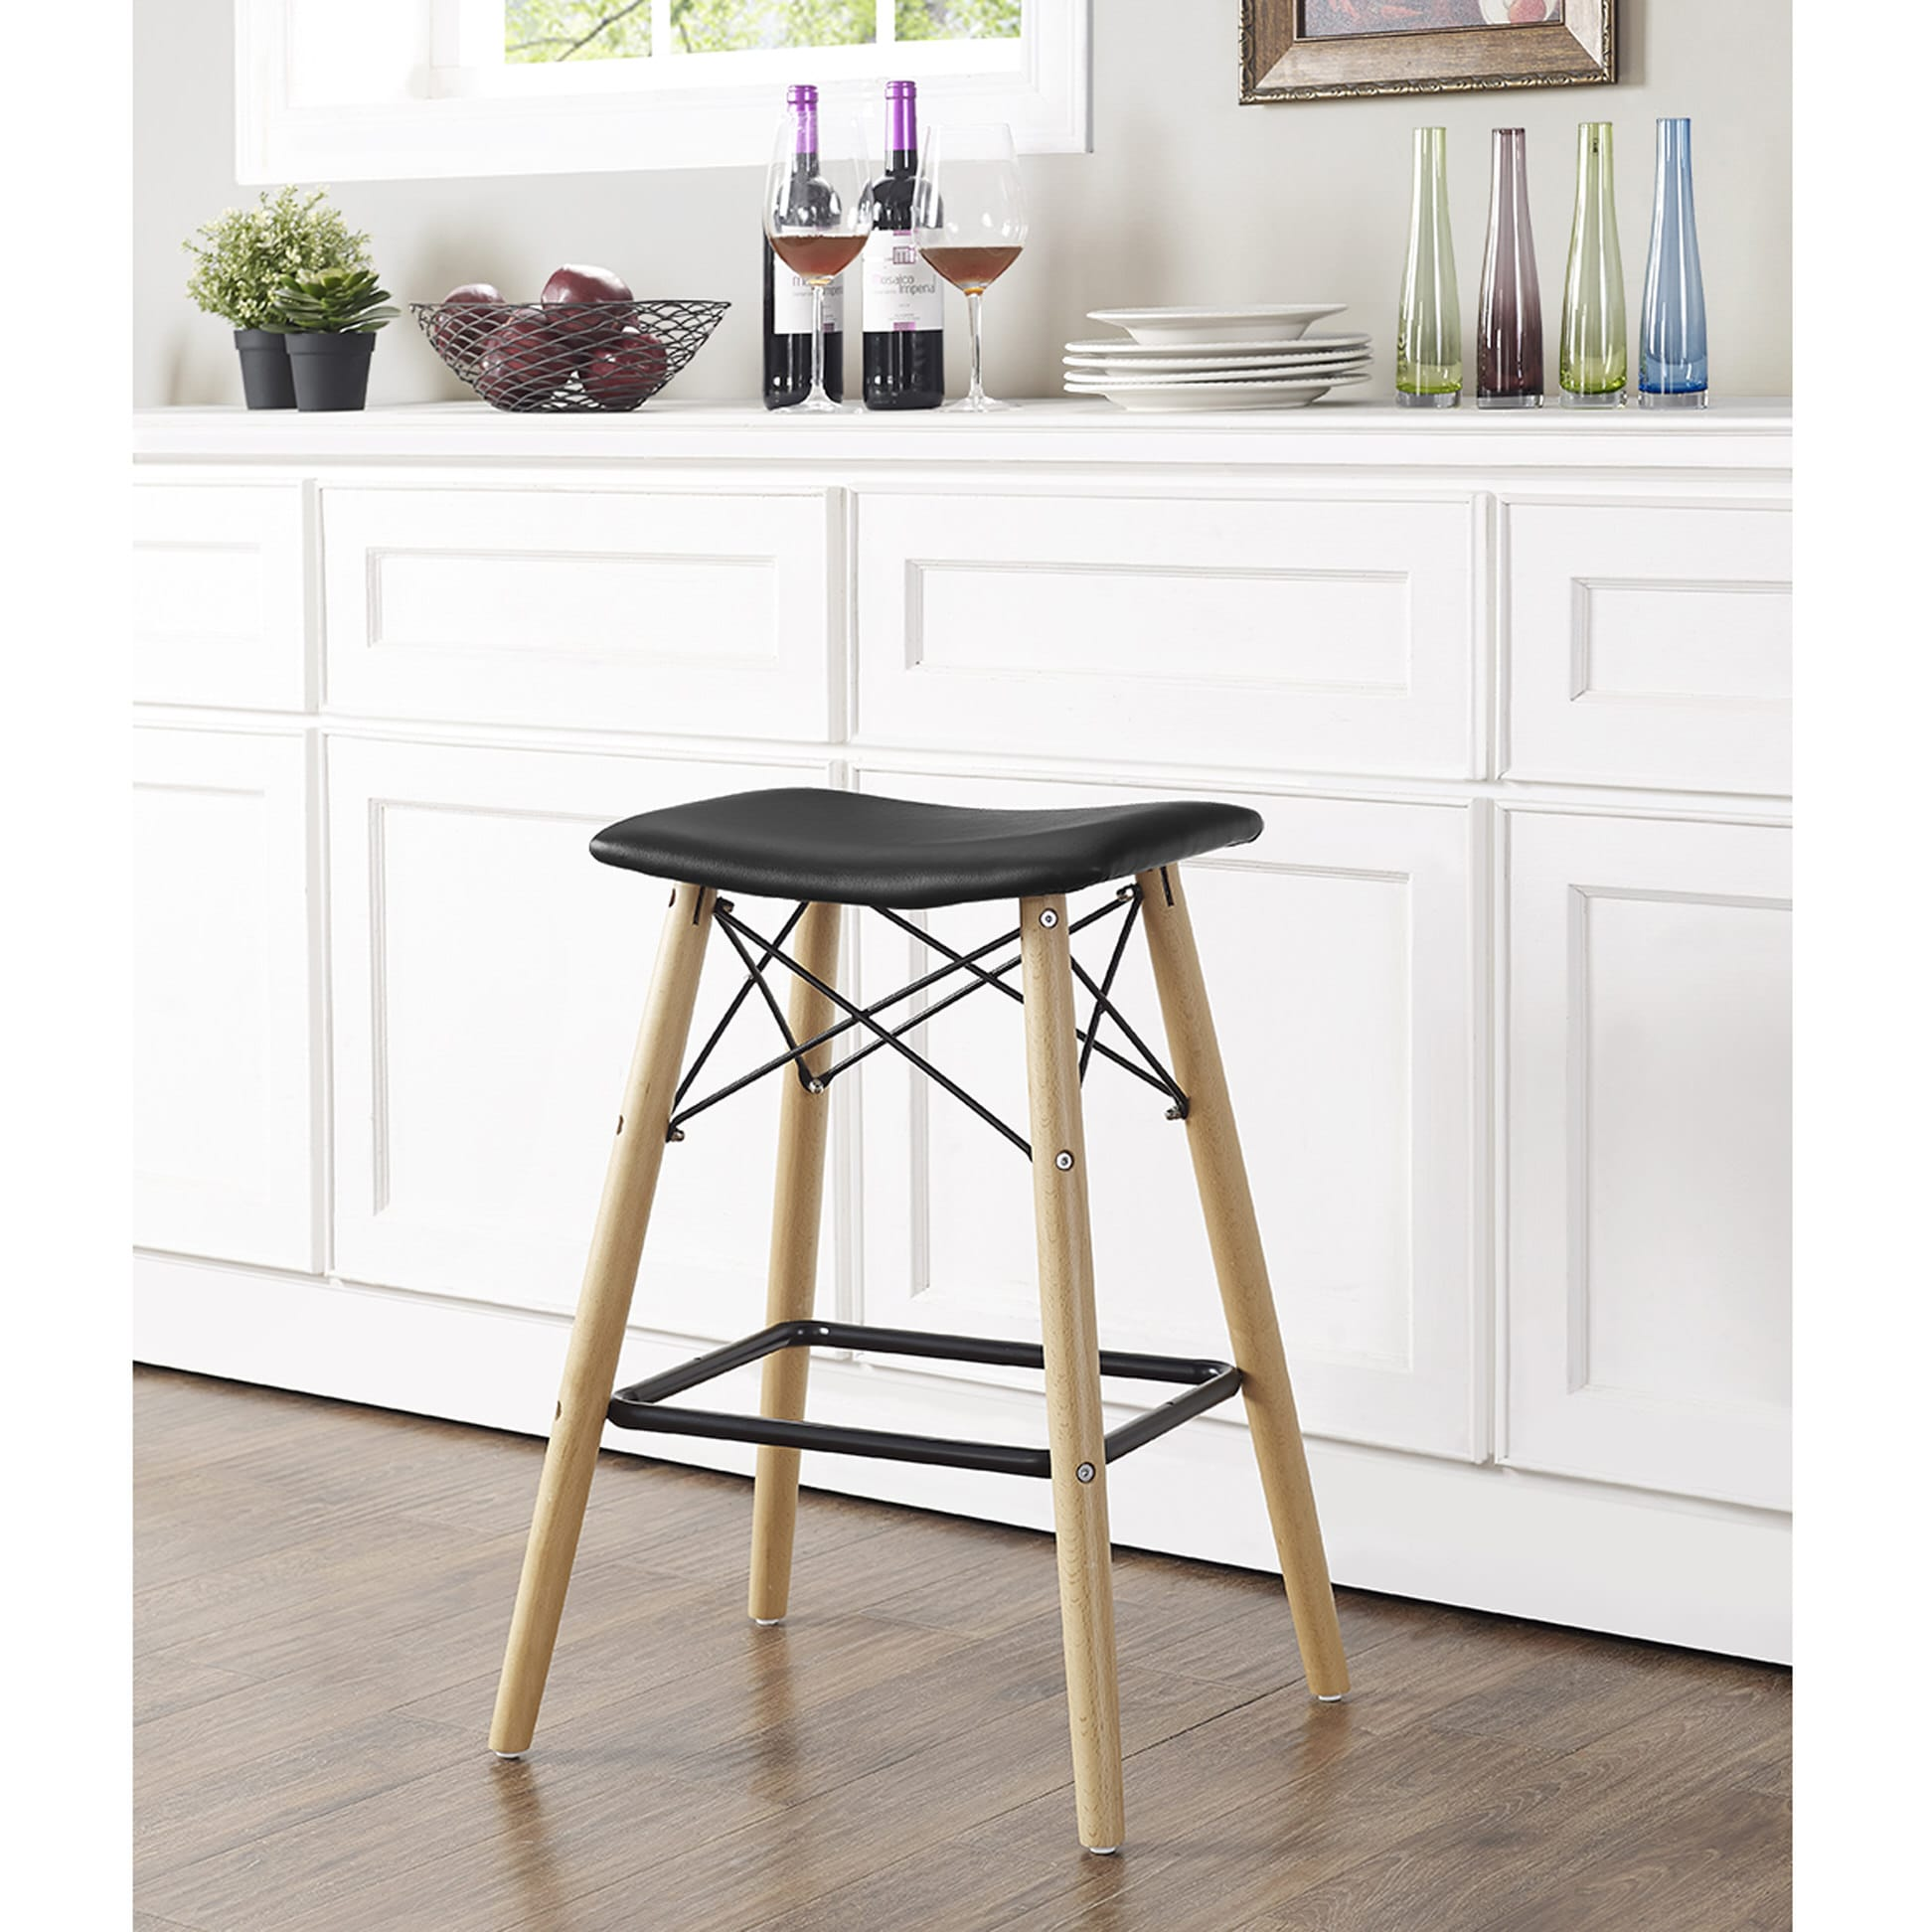 Peachy Retro Modern Counter Stool Black By Walker Edison Ocoug Best Dining Table And Chair Ideas Images Ocougorg